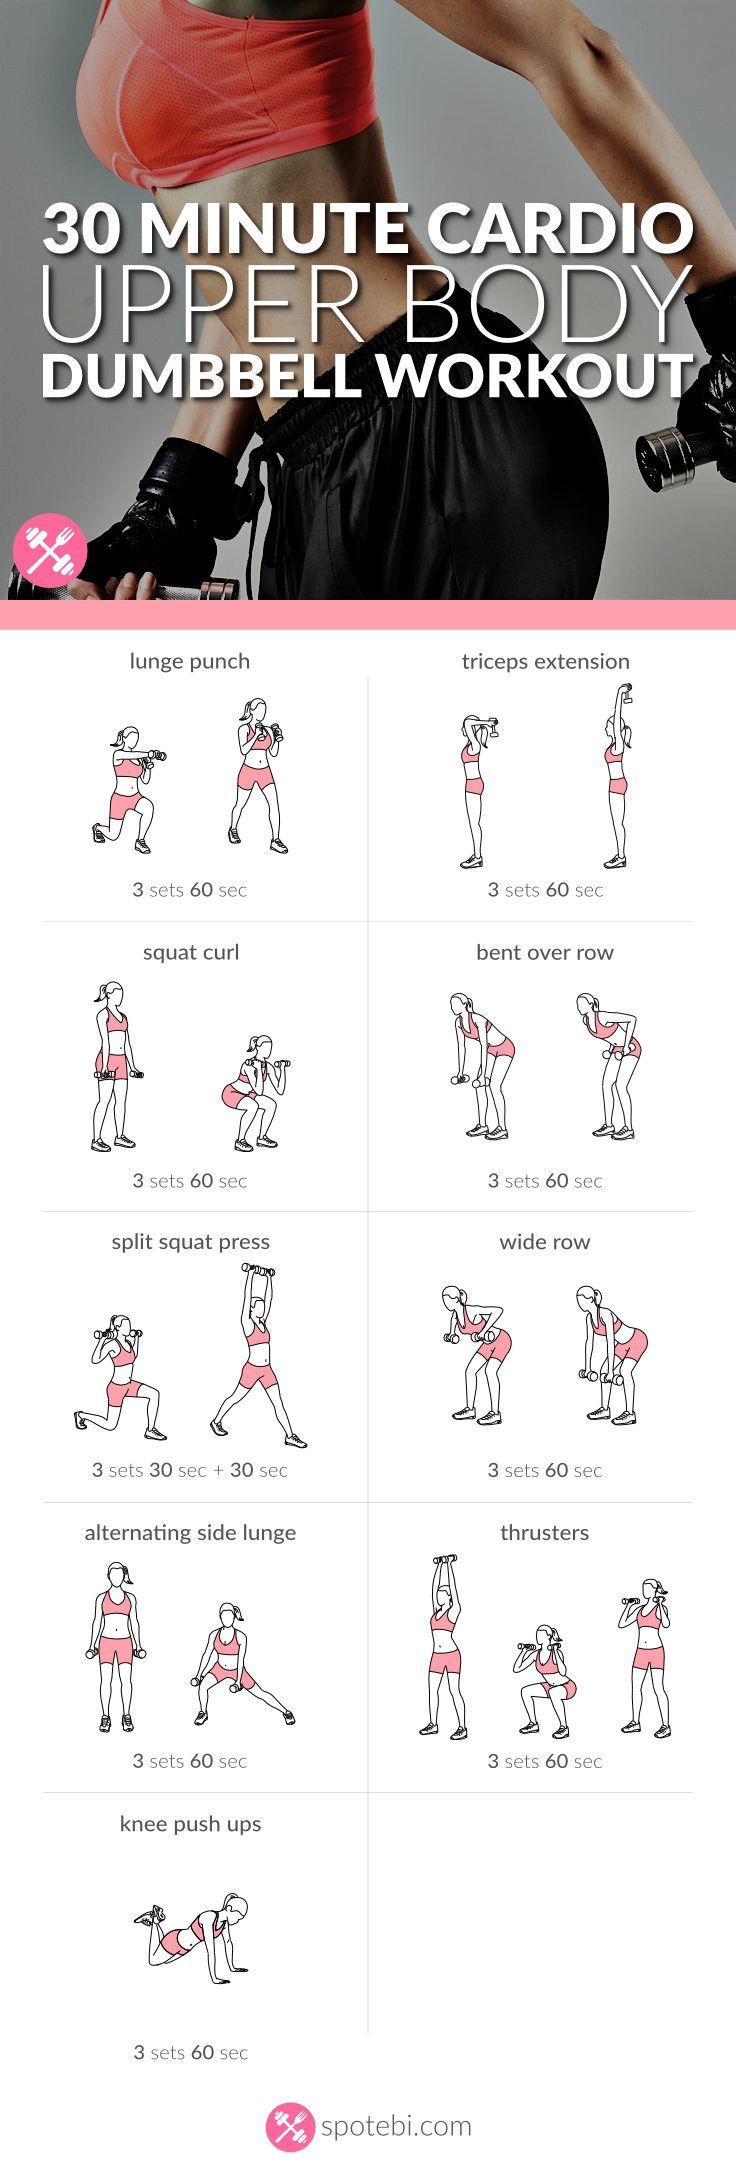 Quickly transform your upper body with this 30 minute cardio routine for women. A dumbbell workout to tone and tighten your arms, chest, back and shoulders. www.spotebi.com/...